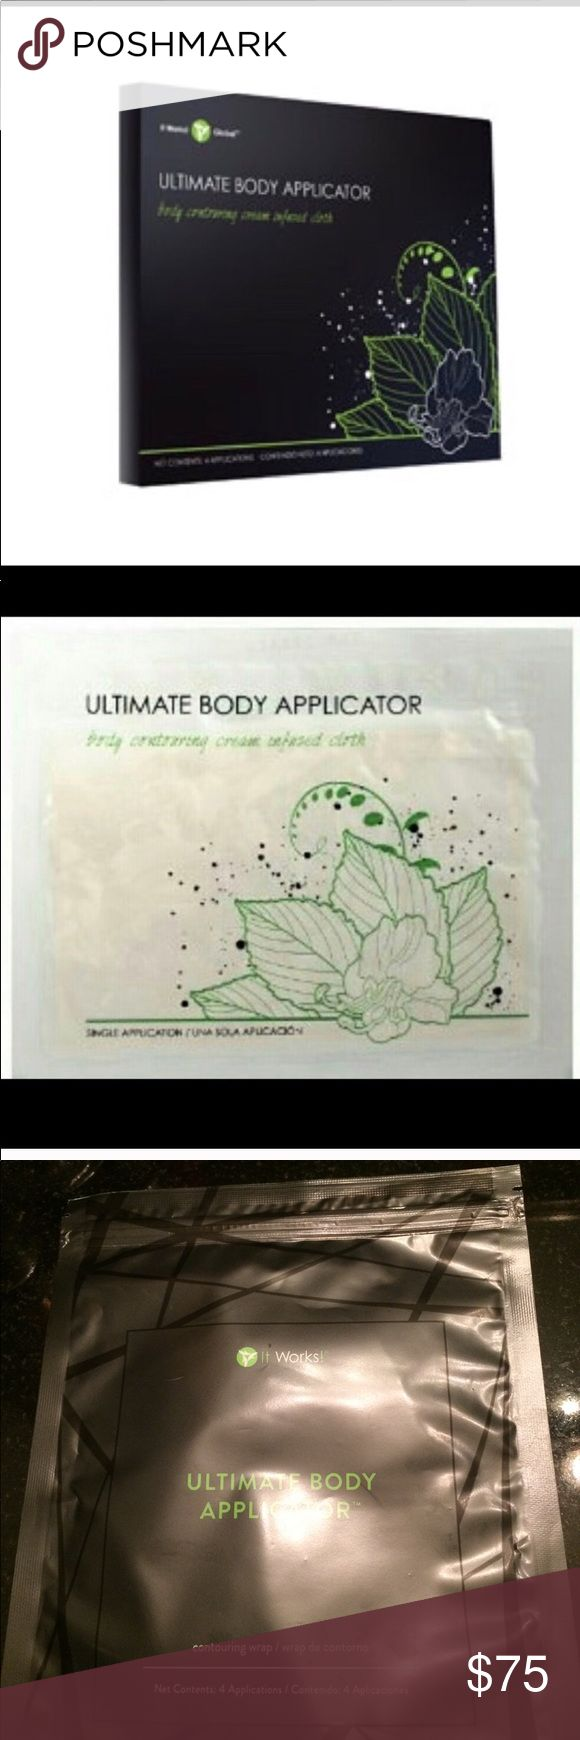 4 It works Ultimate body applicator Wraps Set of 4 wraps sealed In bag. Third picture is actual picture of item. It Works! Other